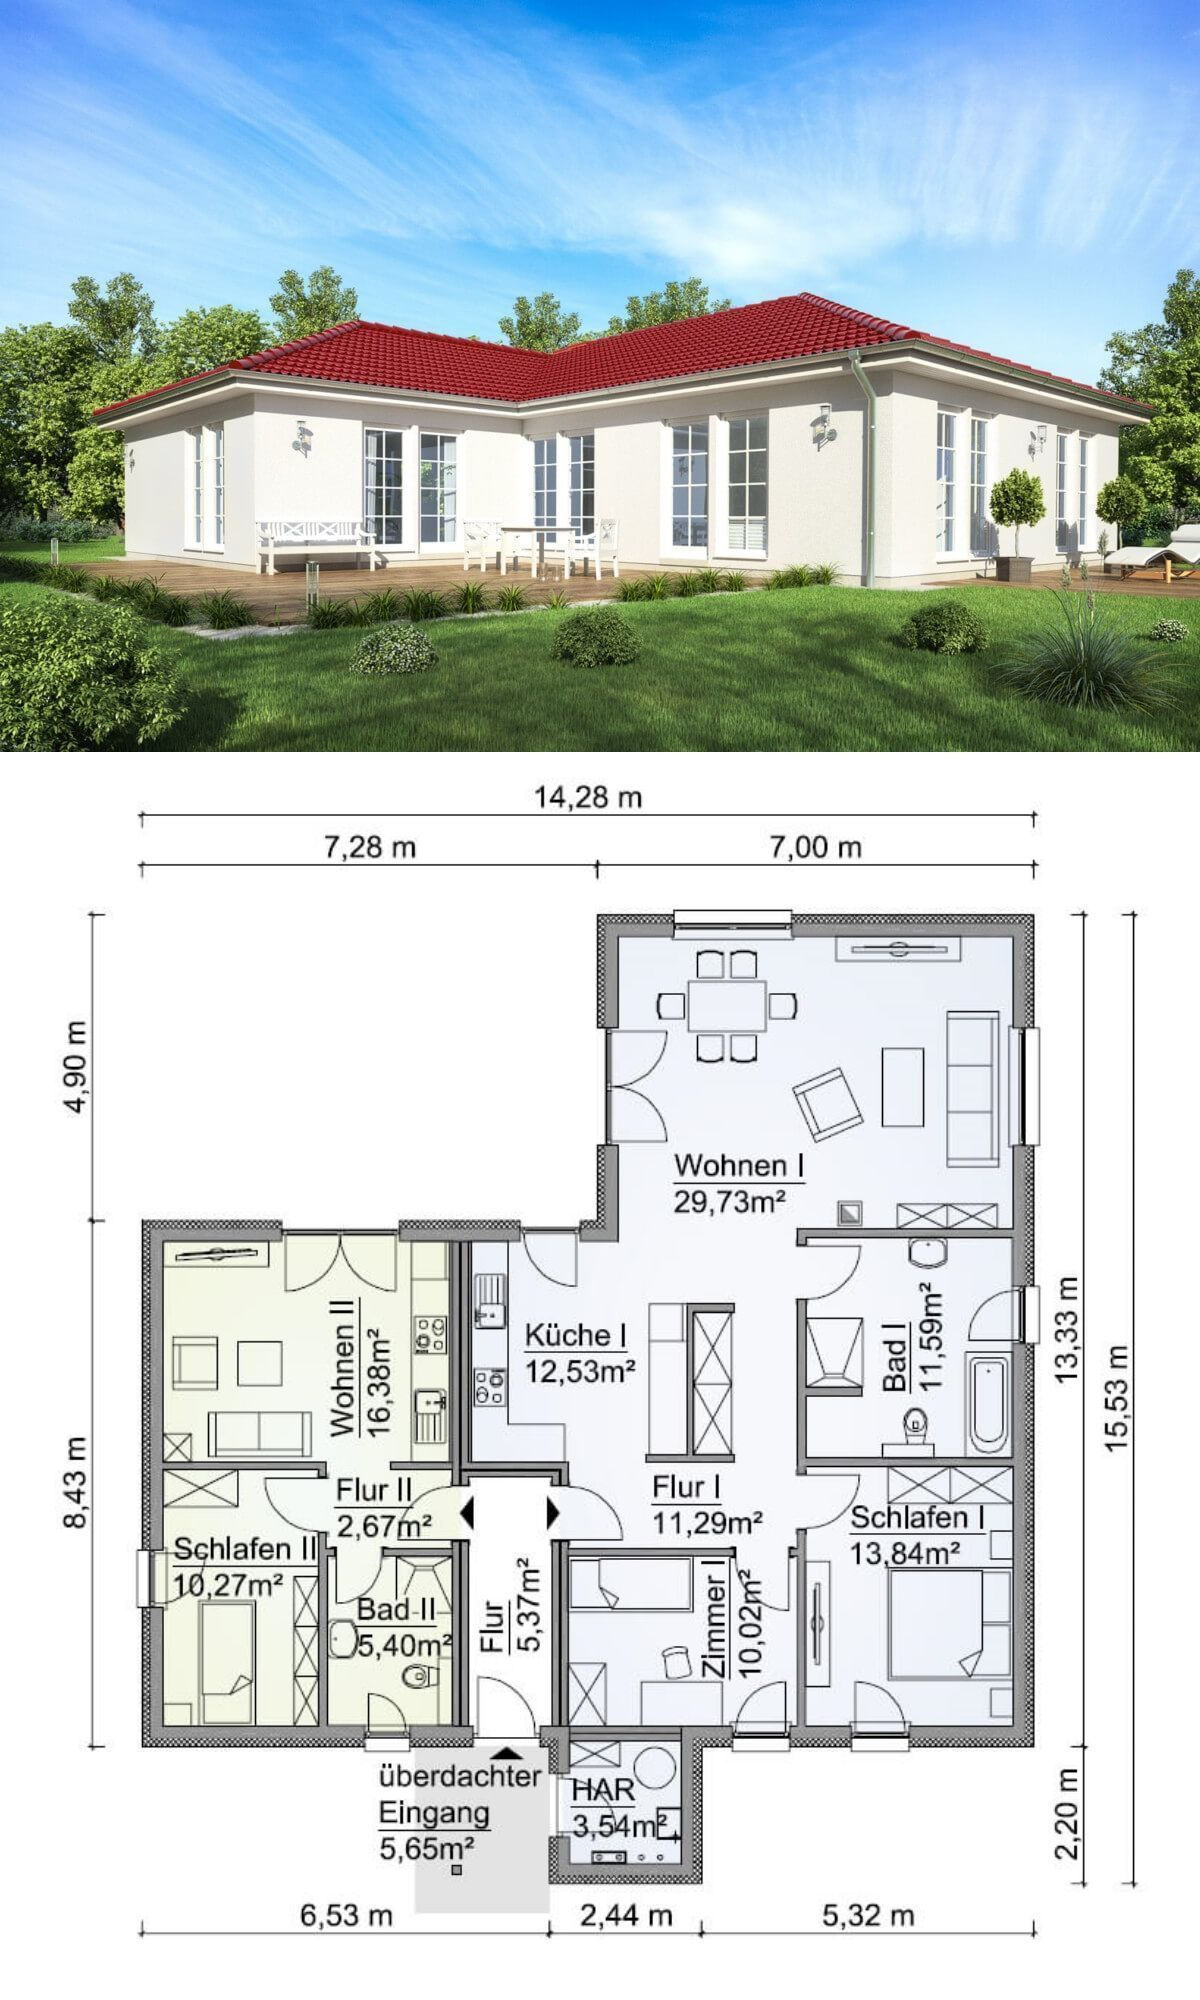 Modern architecture design bungalow house plan sh wb ew dream home ideas with one also rh pinterest